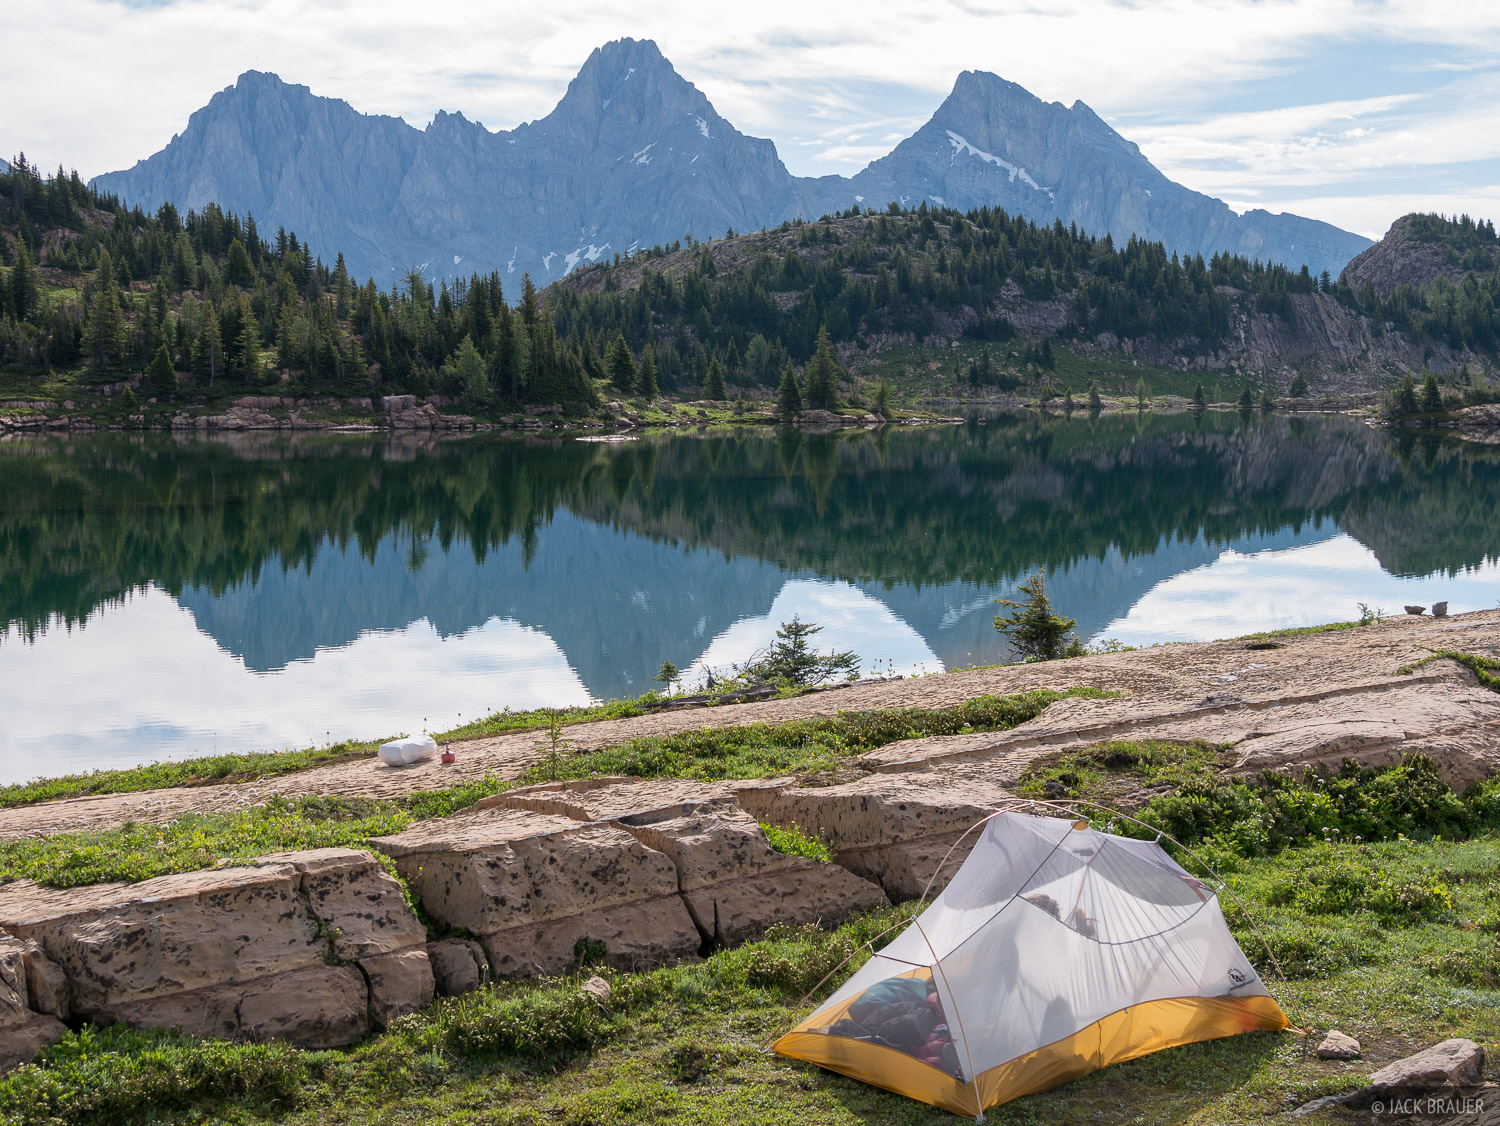 For our second night in the Height of the Rockies Provincial Park, we moved our tent down to the lake where we camped on an isthmus...